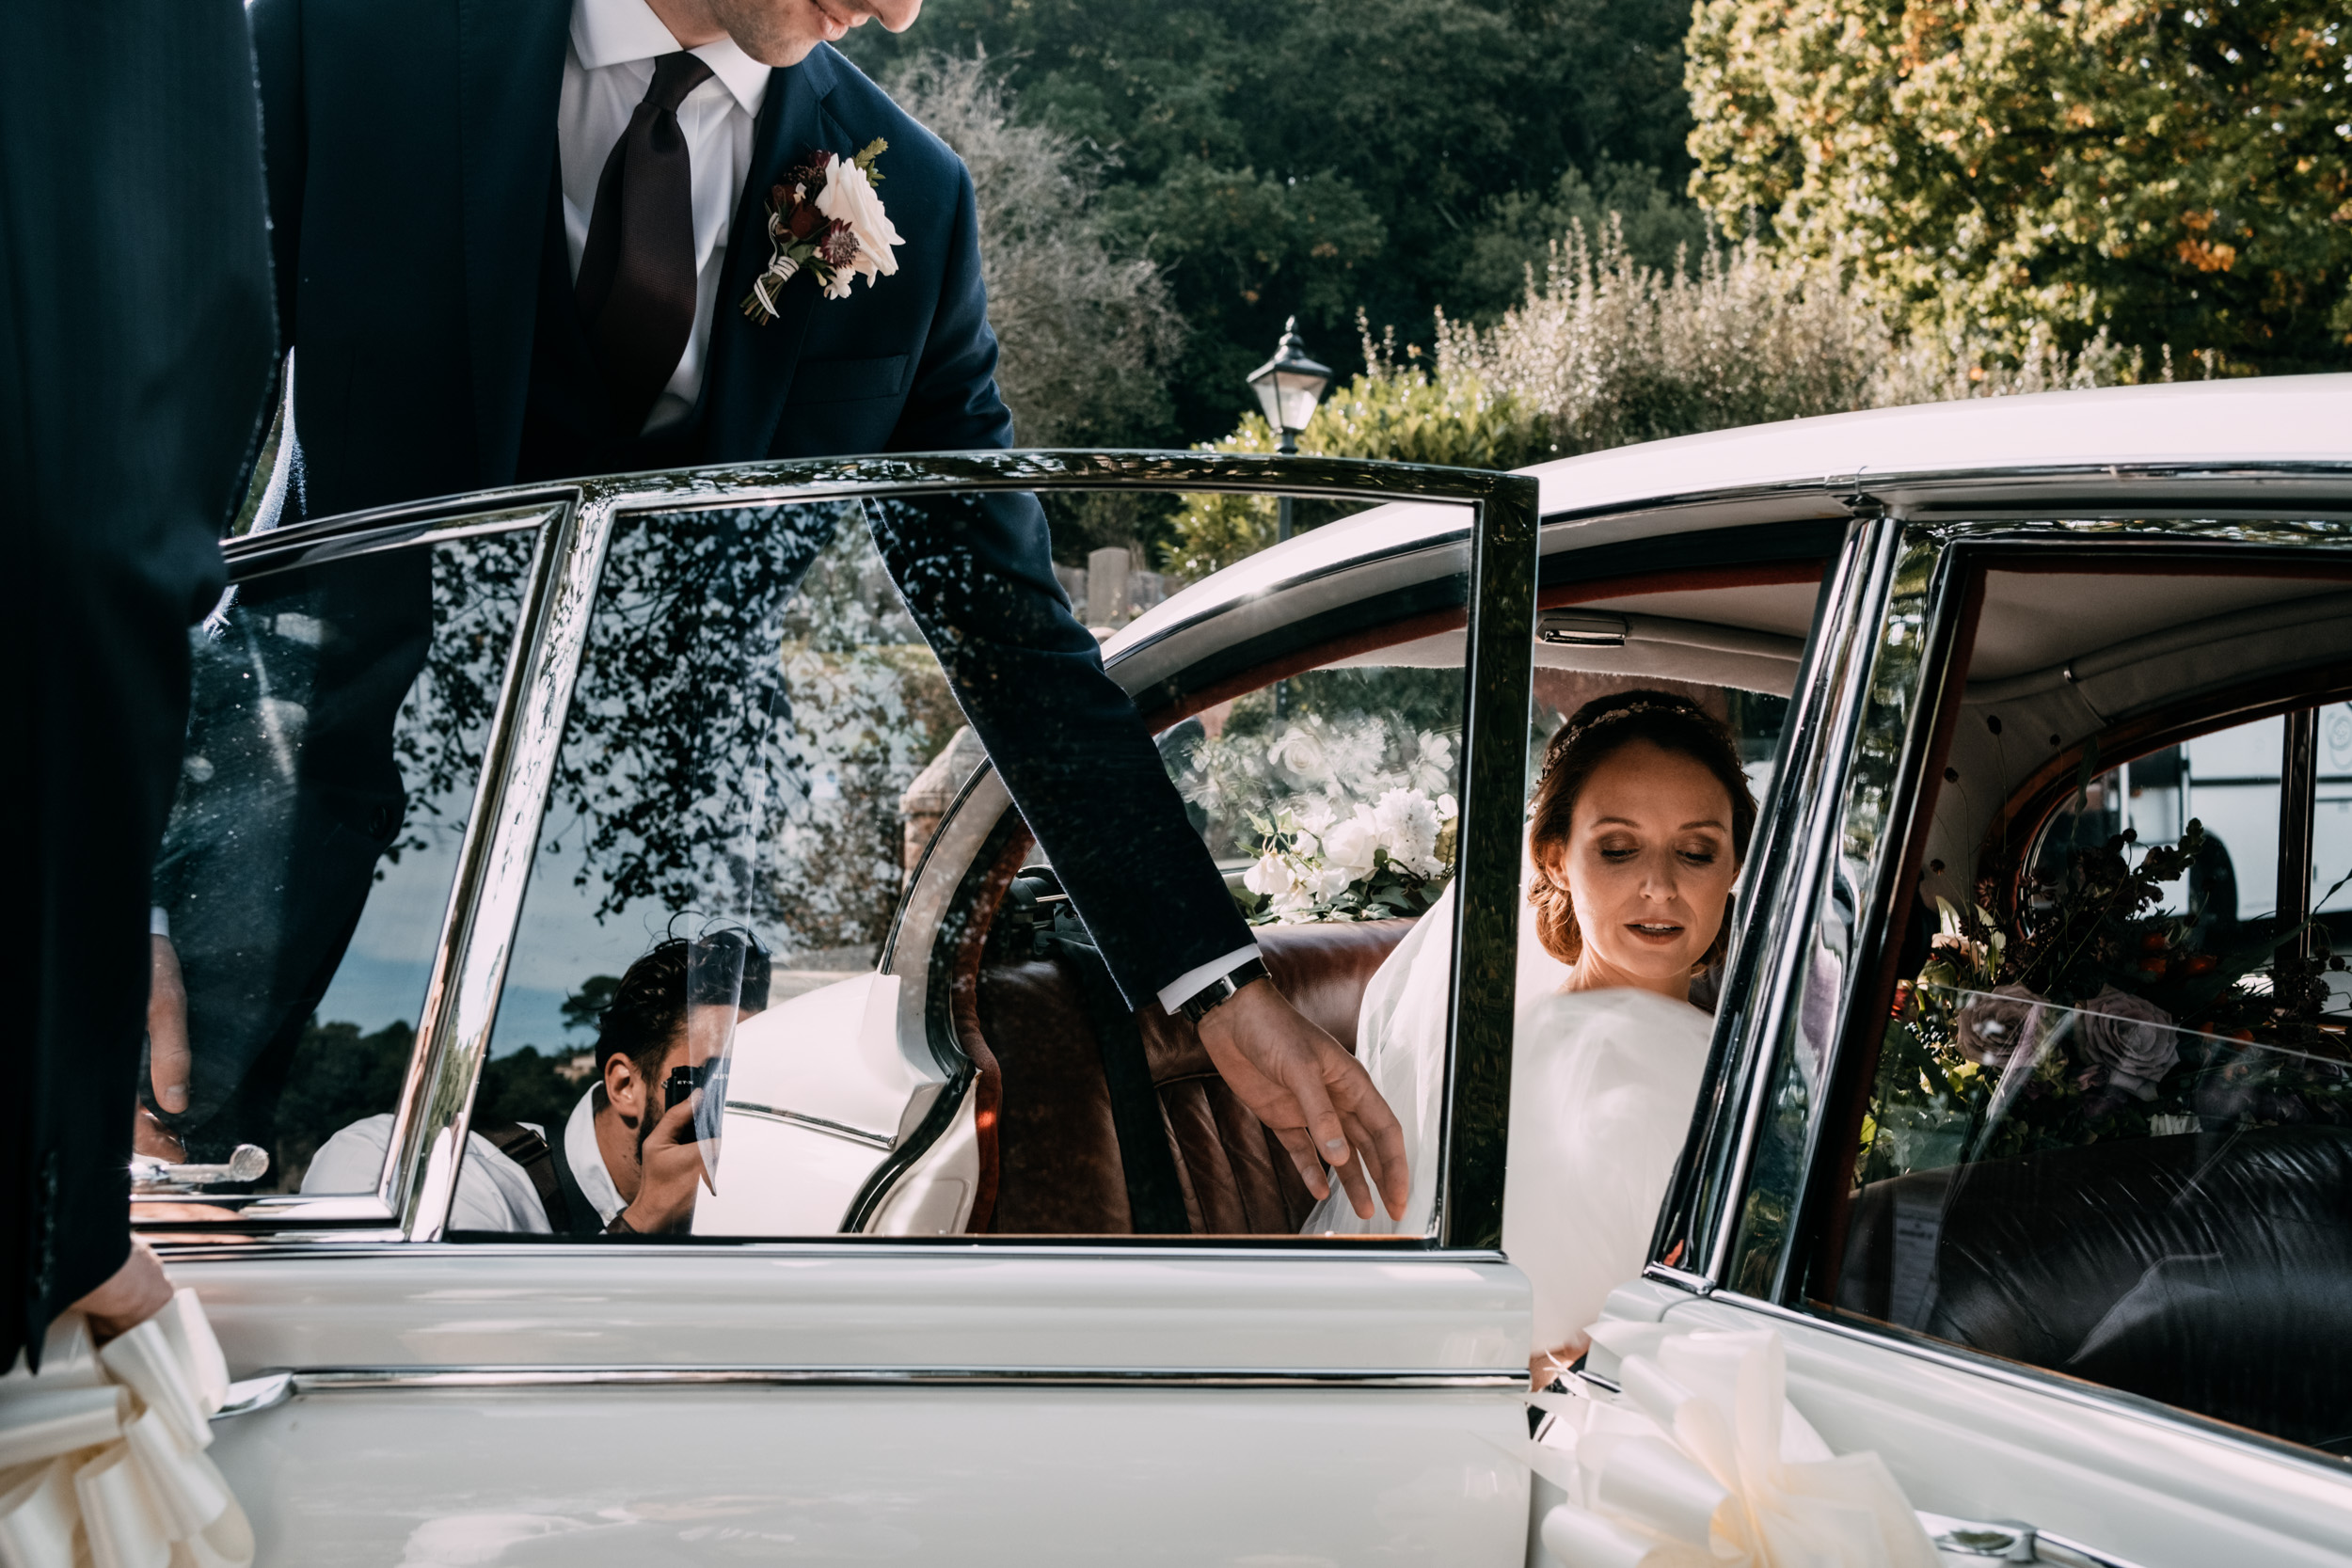 Documentary wedding photography of a bride and groom after their ceremony